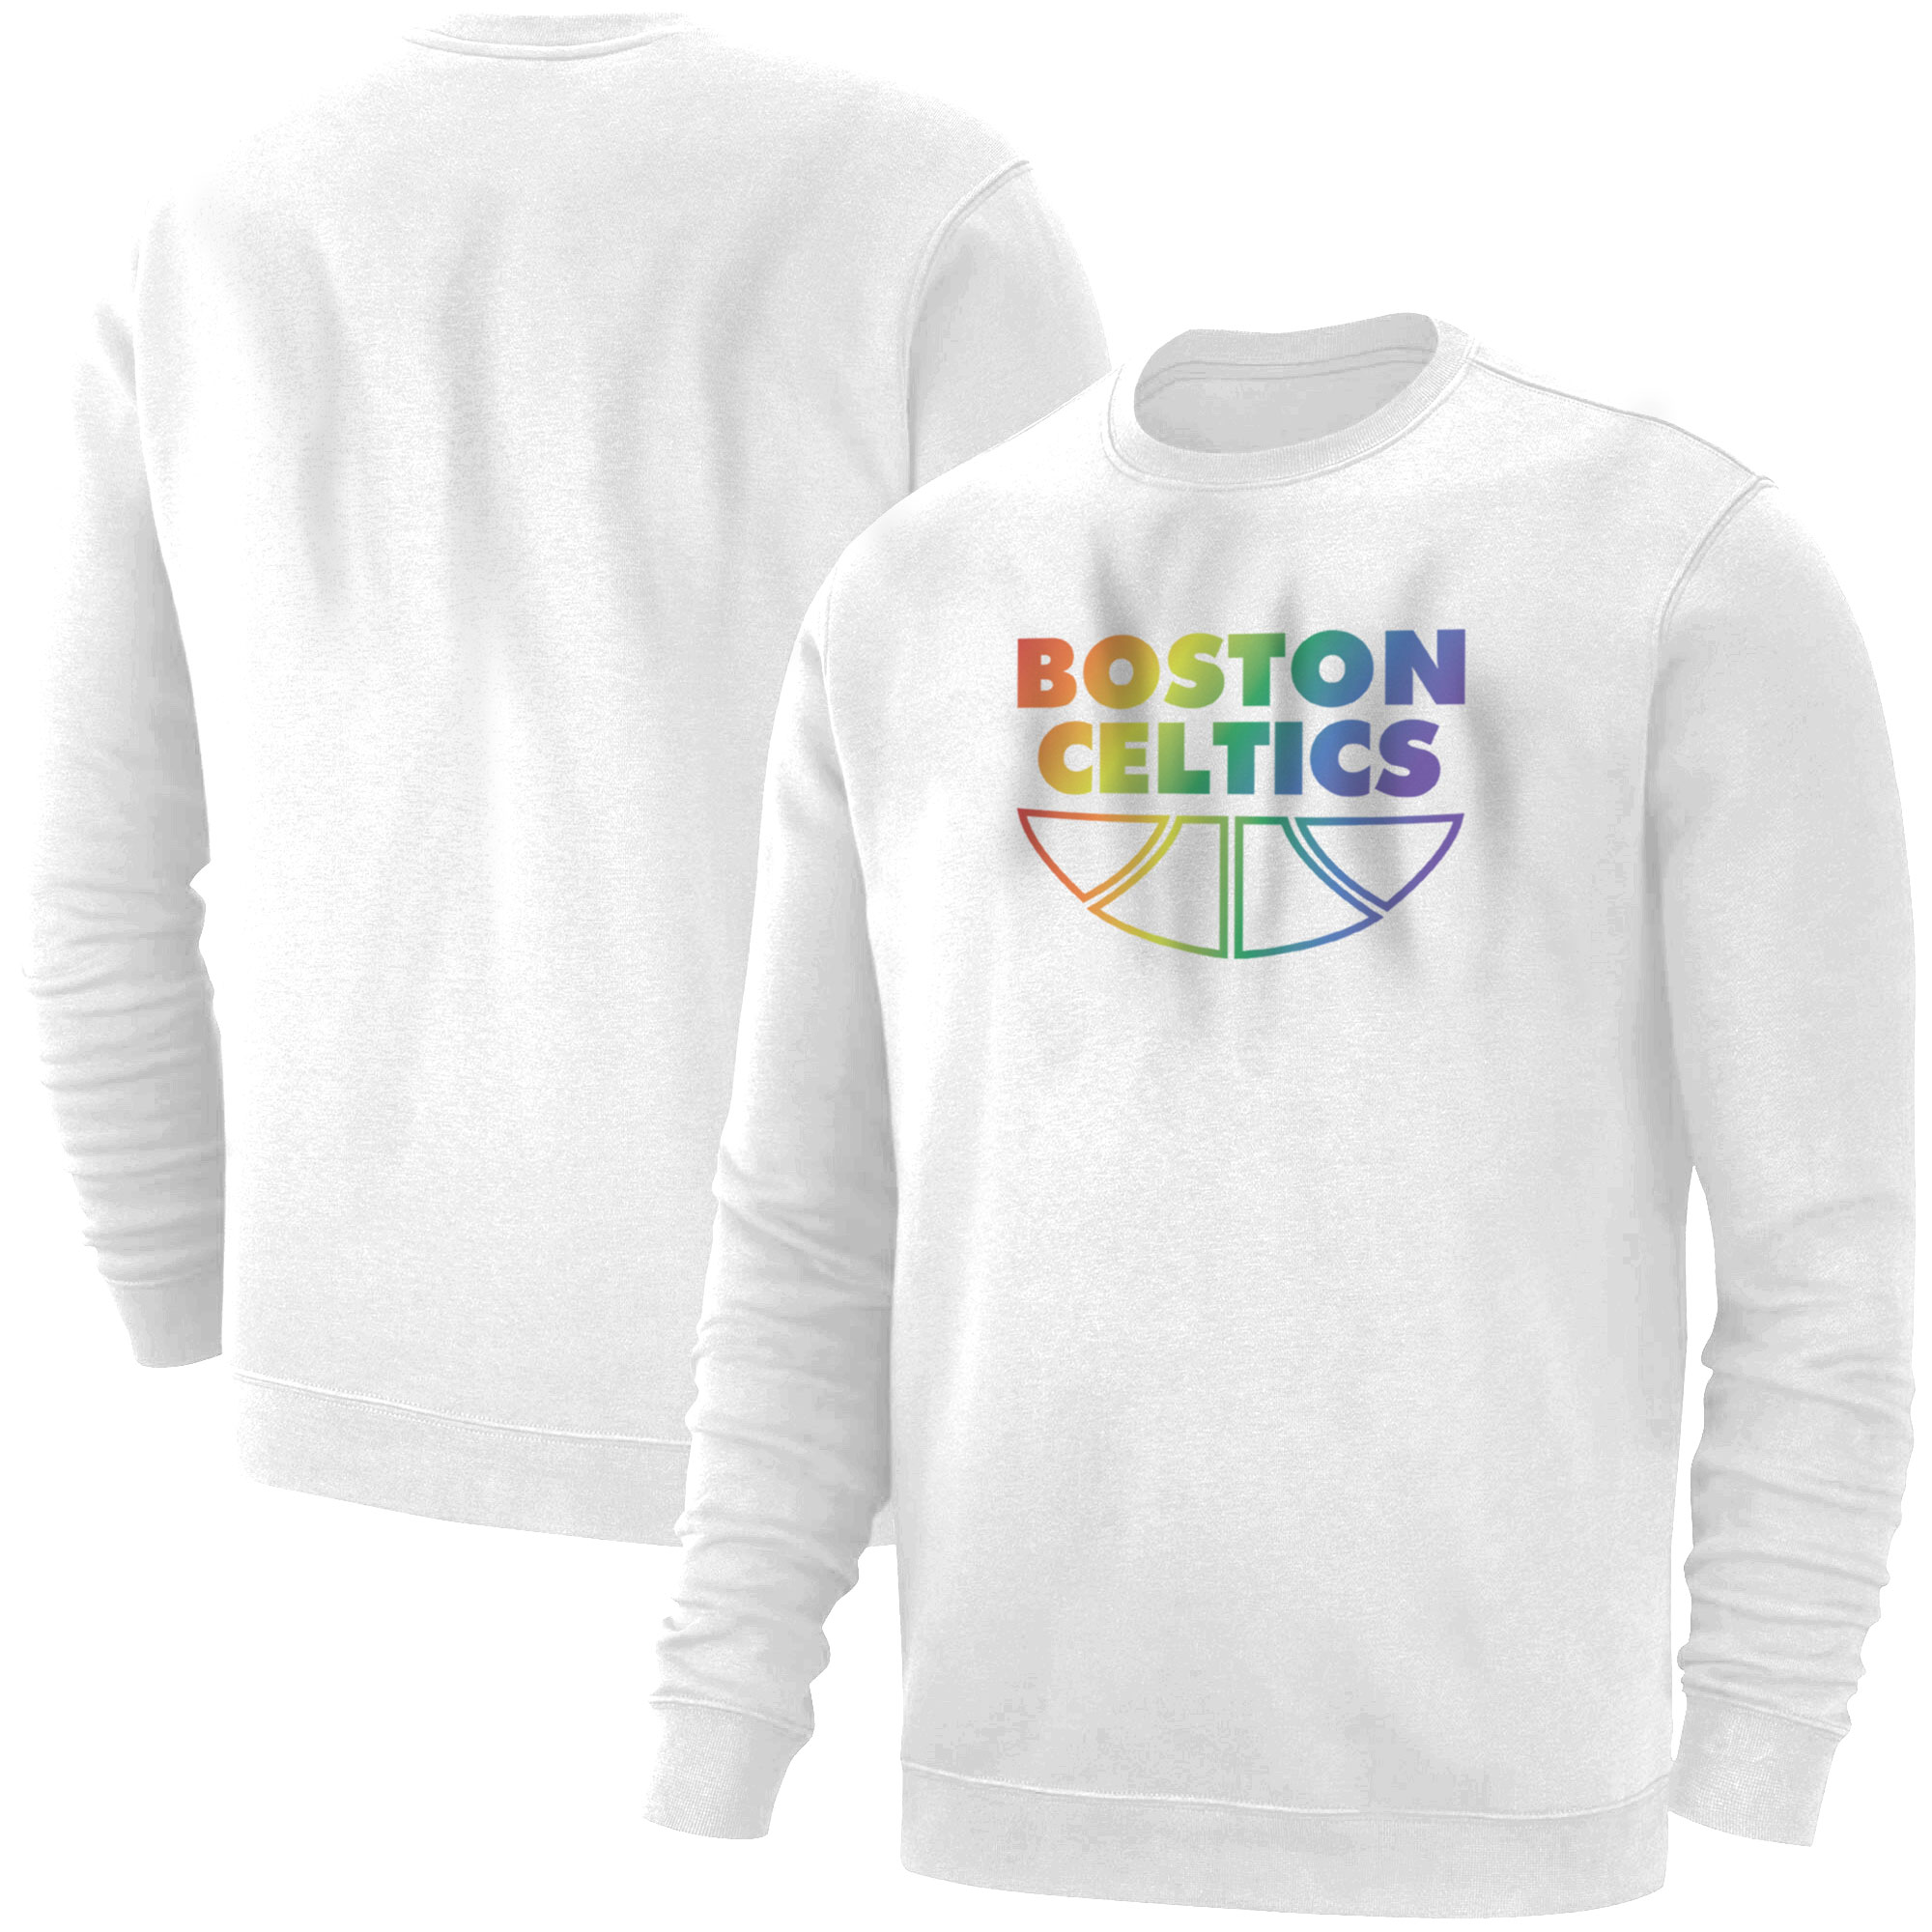 Boston Celtics Basic (BSC-BLC-503-NBA-MIL	)